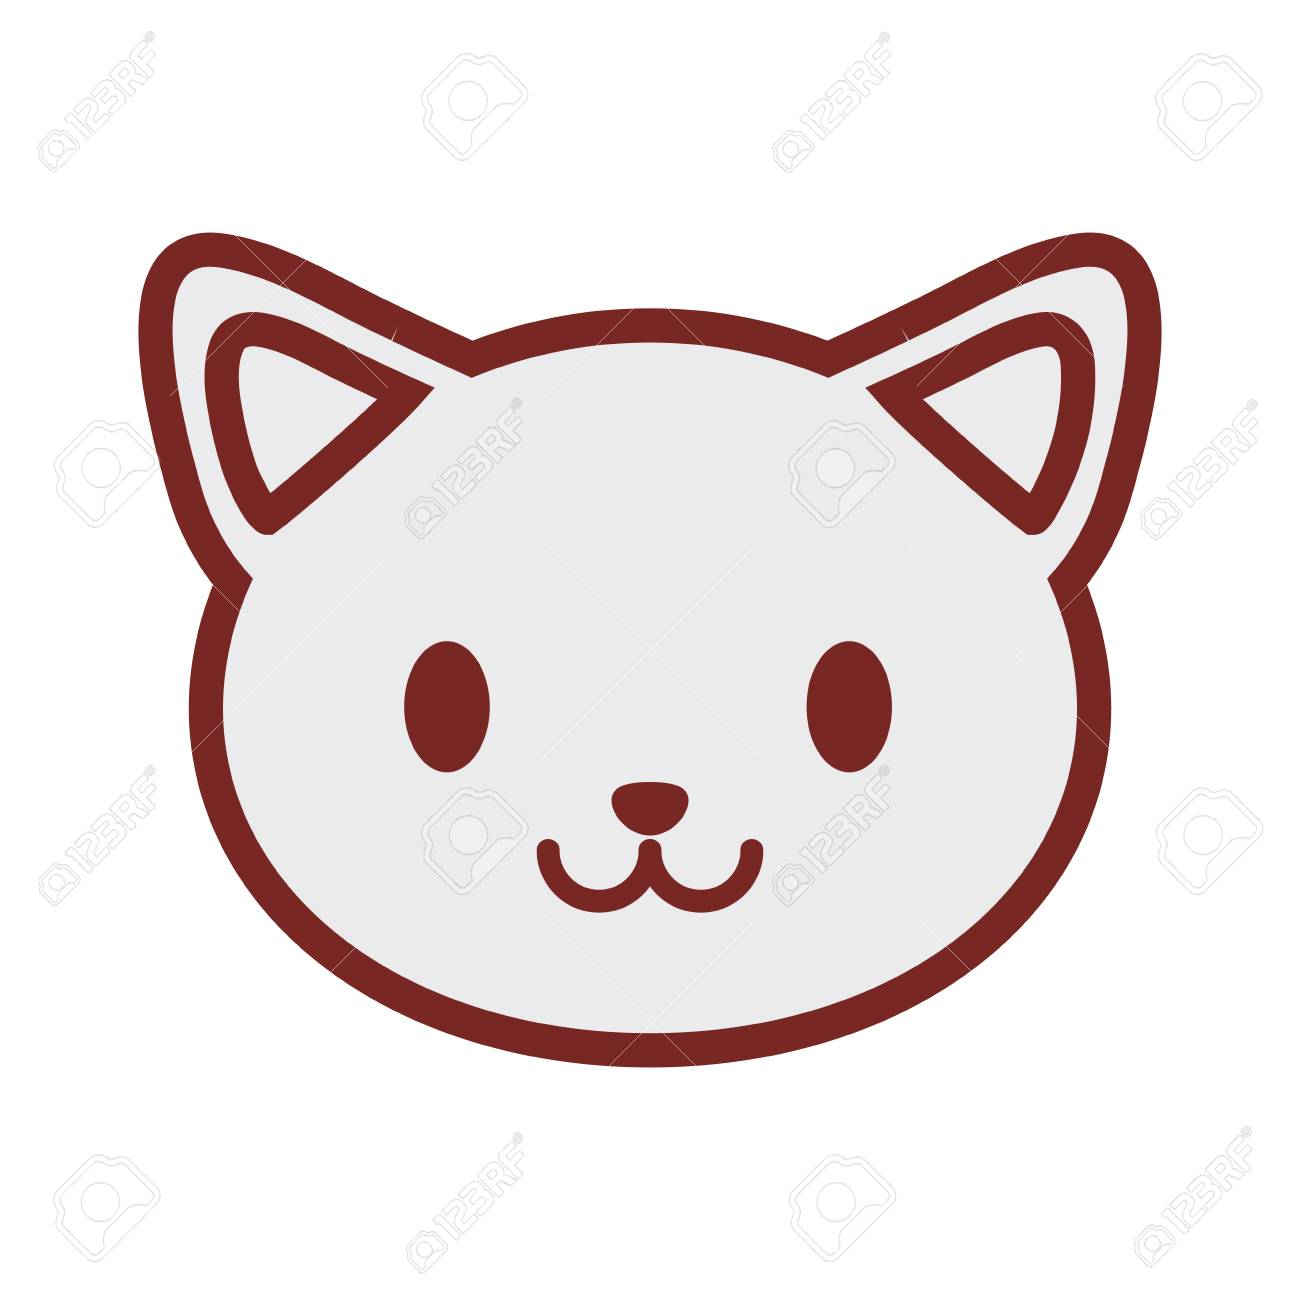 cute cat face image vector illustration royalty free cliparts